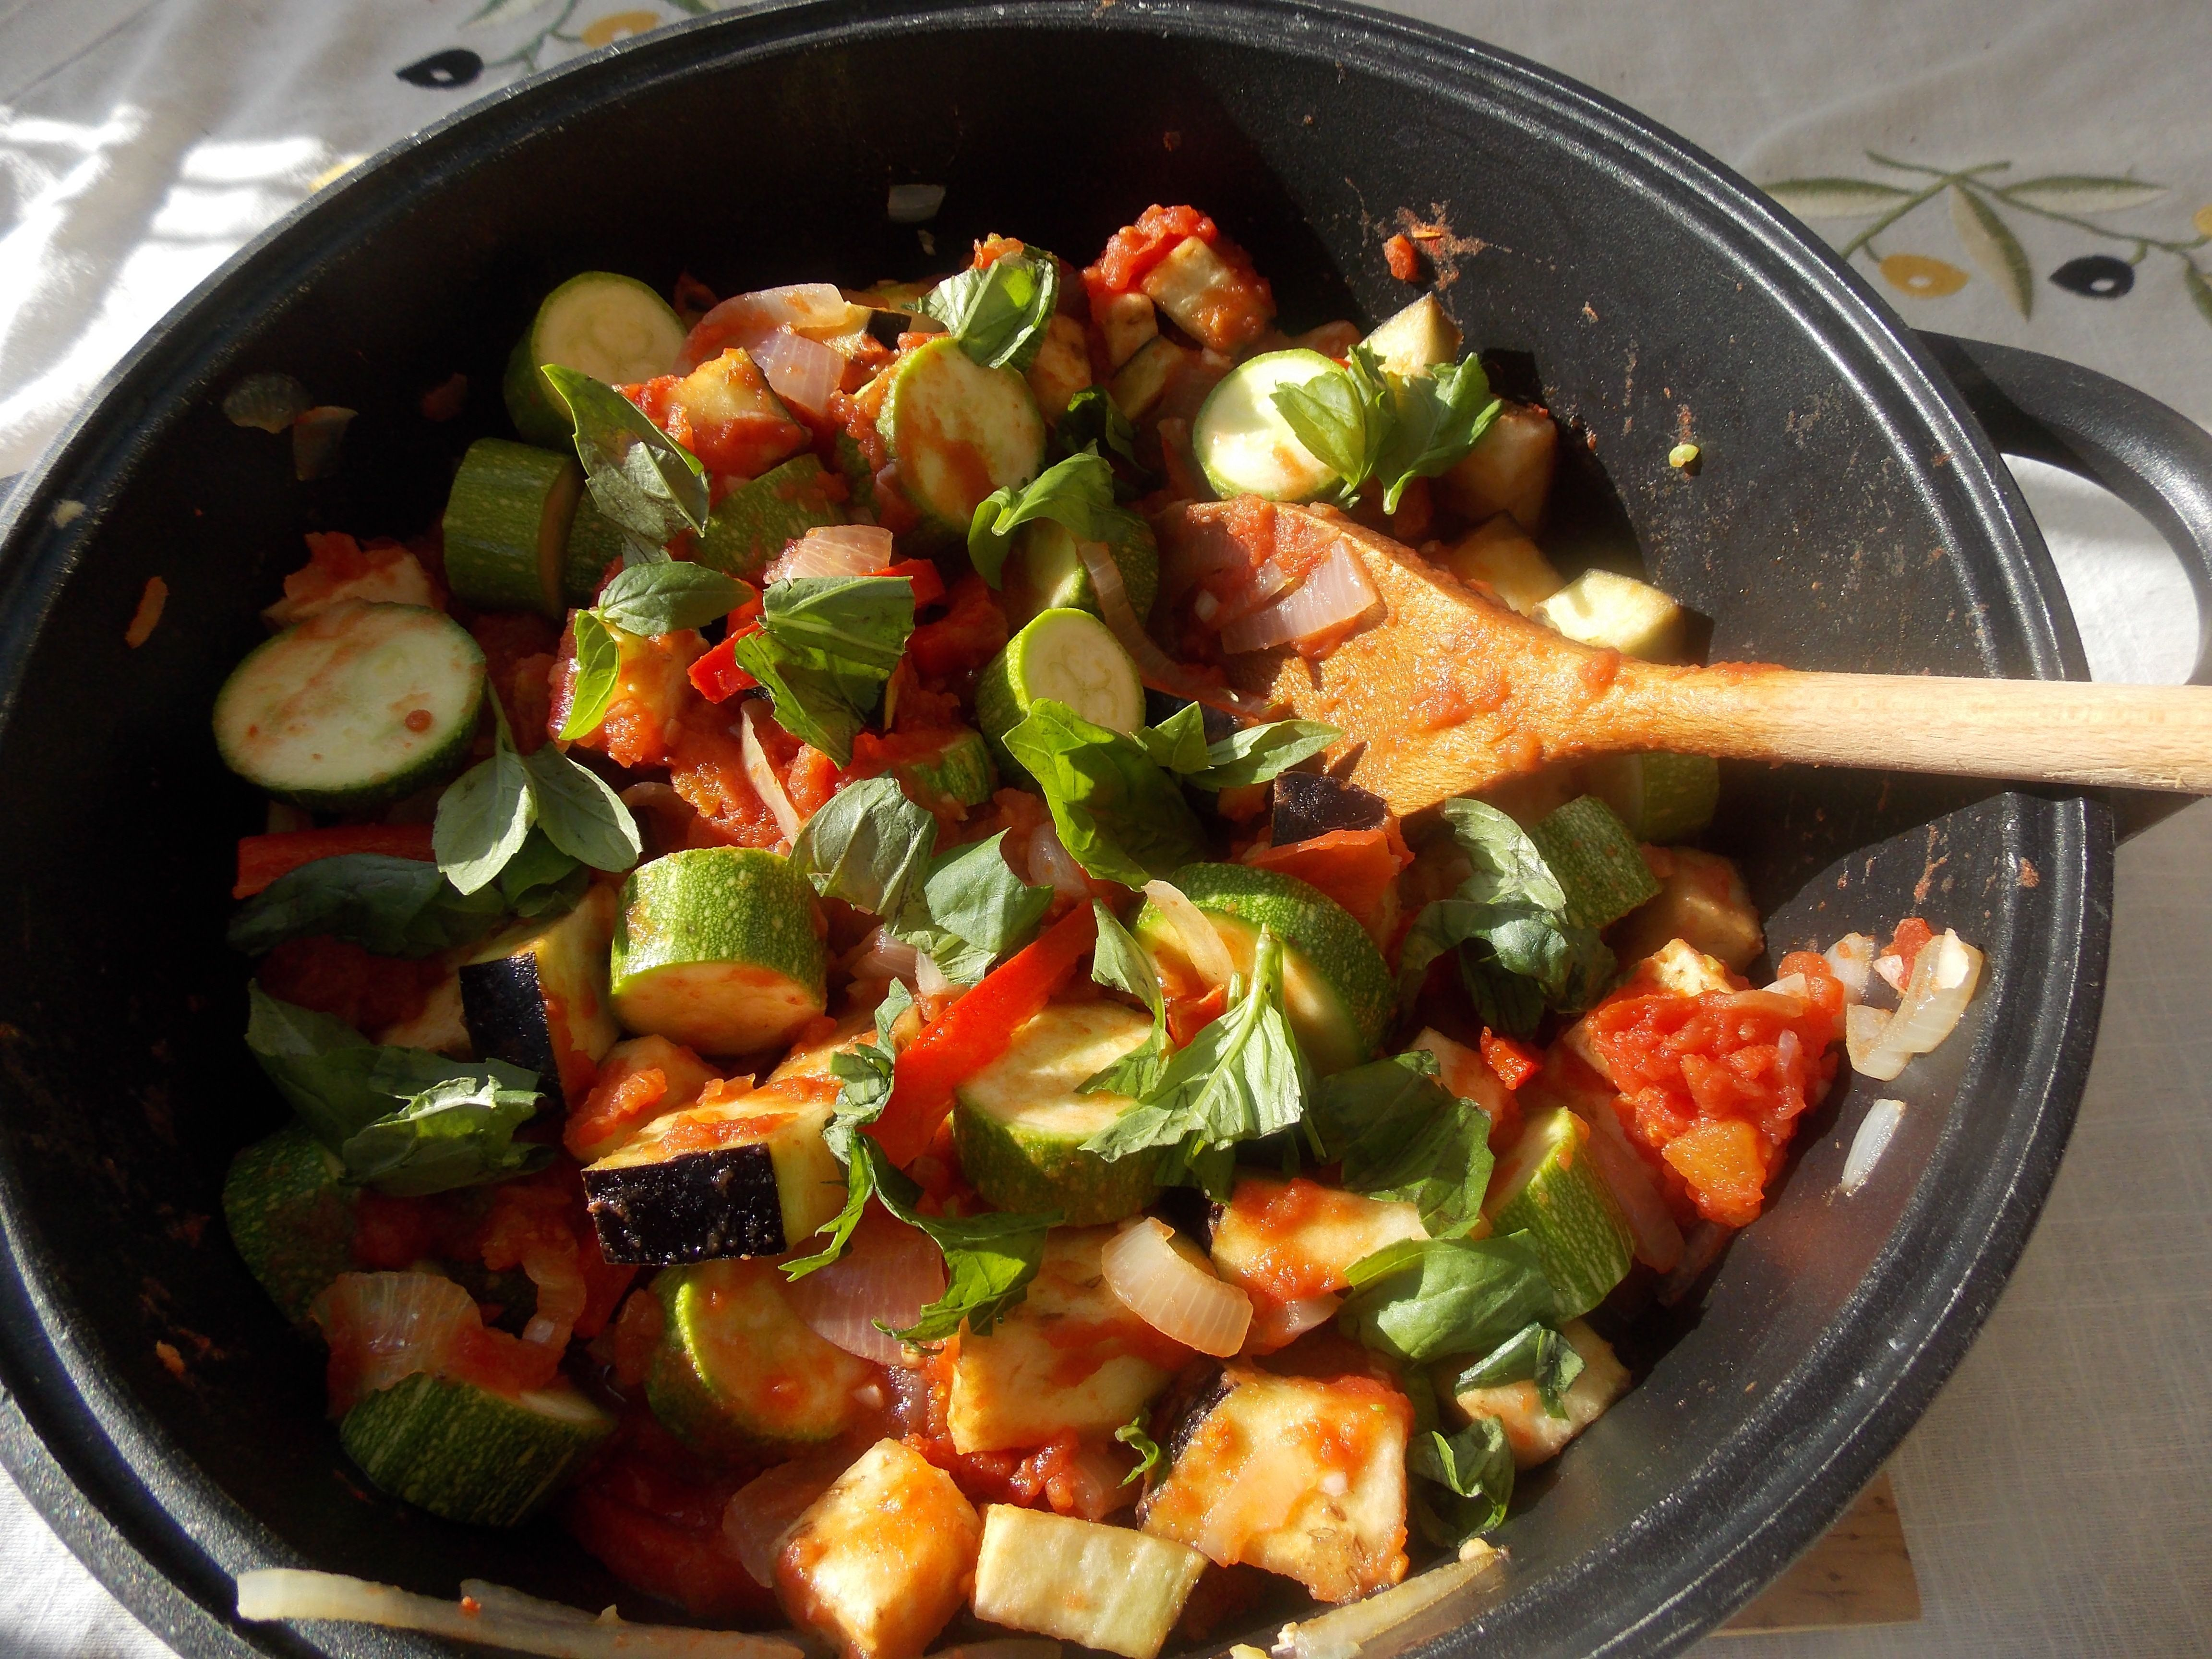 Ratatouille Recipe With Canning Instructions